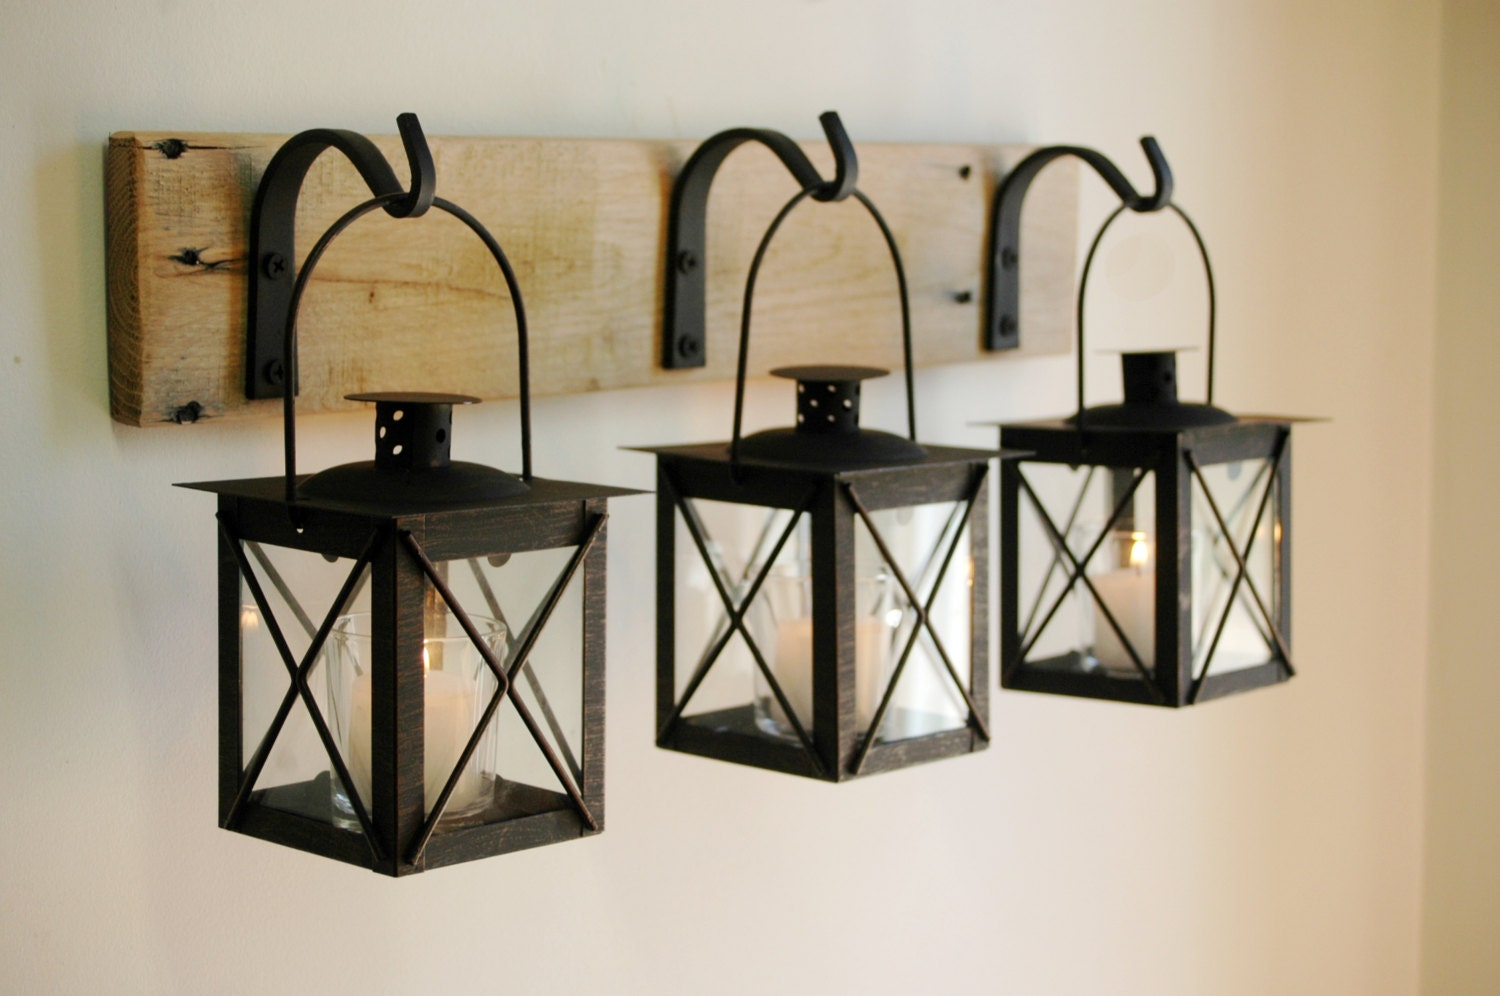 Wall Decoration Items Black Lantern Trio Wall Decor Home Decor Rustic Decor